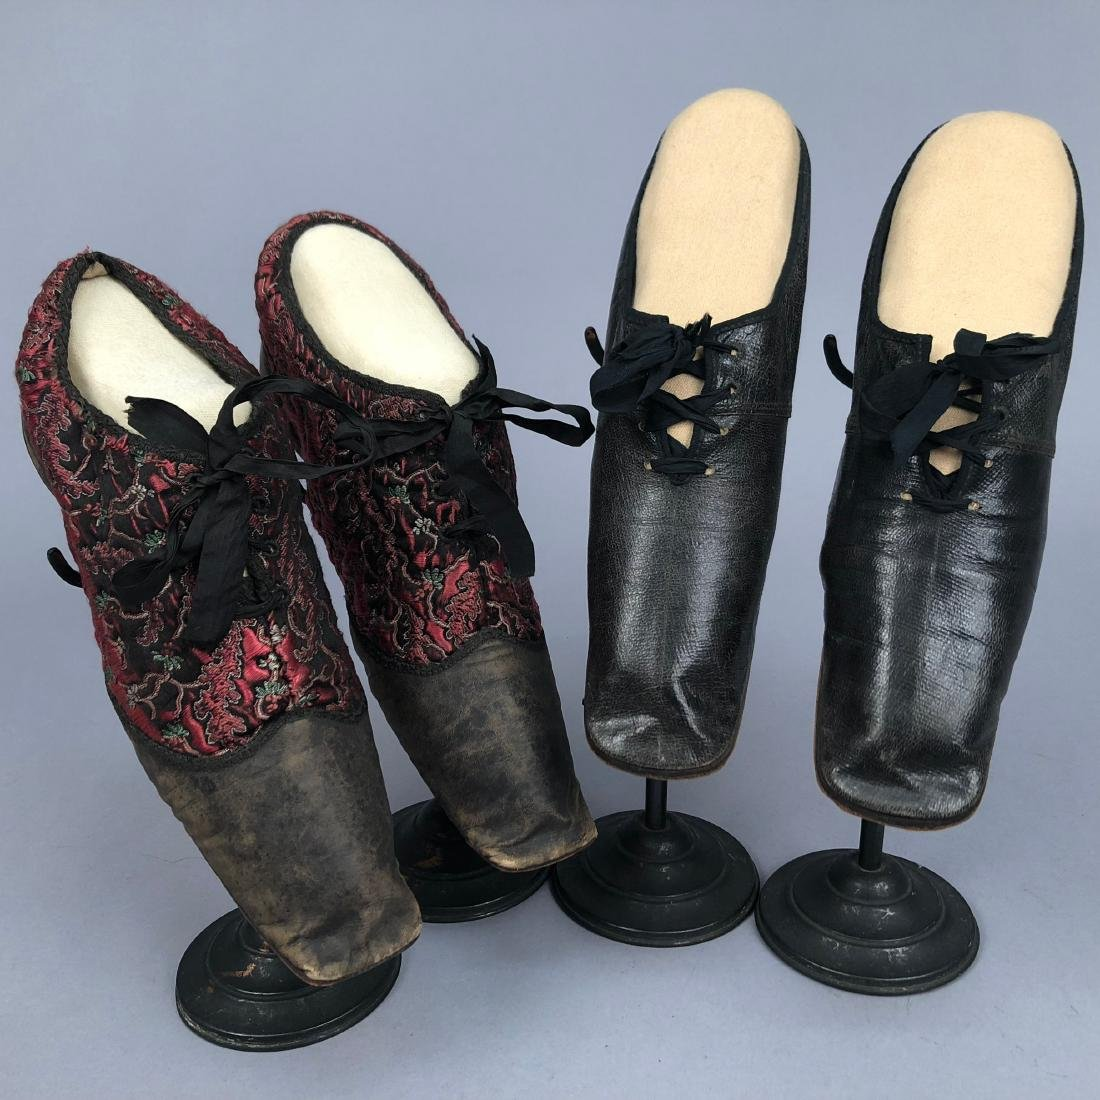 TWO PAIR LADIES' LACING SHOES, 1840s